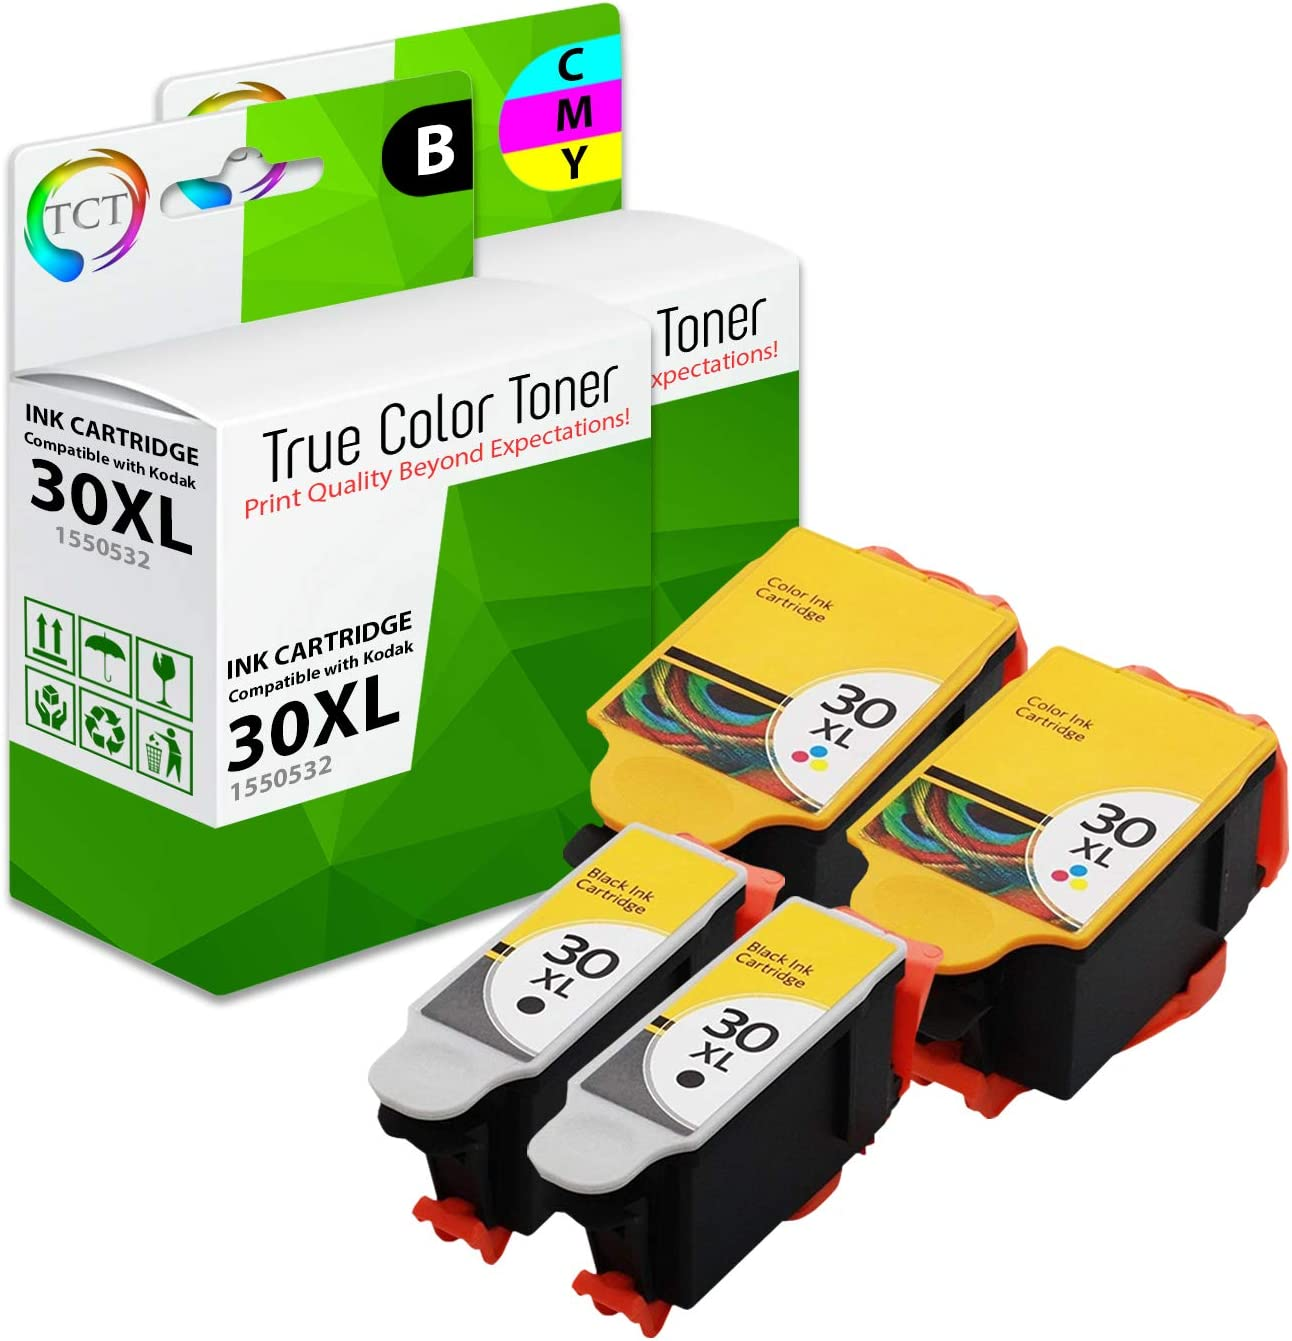 TCT Compatible Ink Cartridge Replacement for Kodak 30XL 30 XL High Yield Works with Kodak ESP C110 C310 C315, Office 2150 Printers (Black, Tri-Color) - 4 Pack